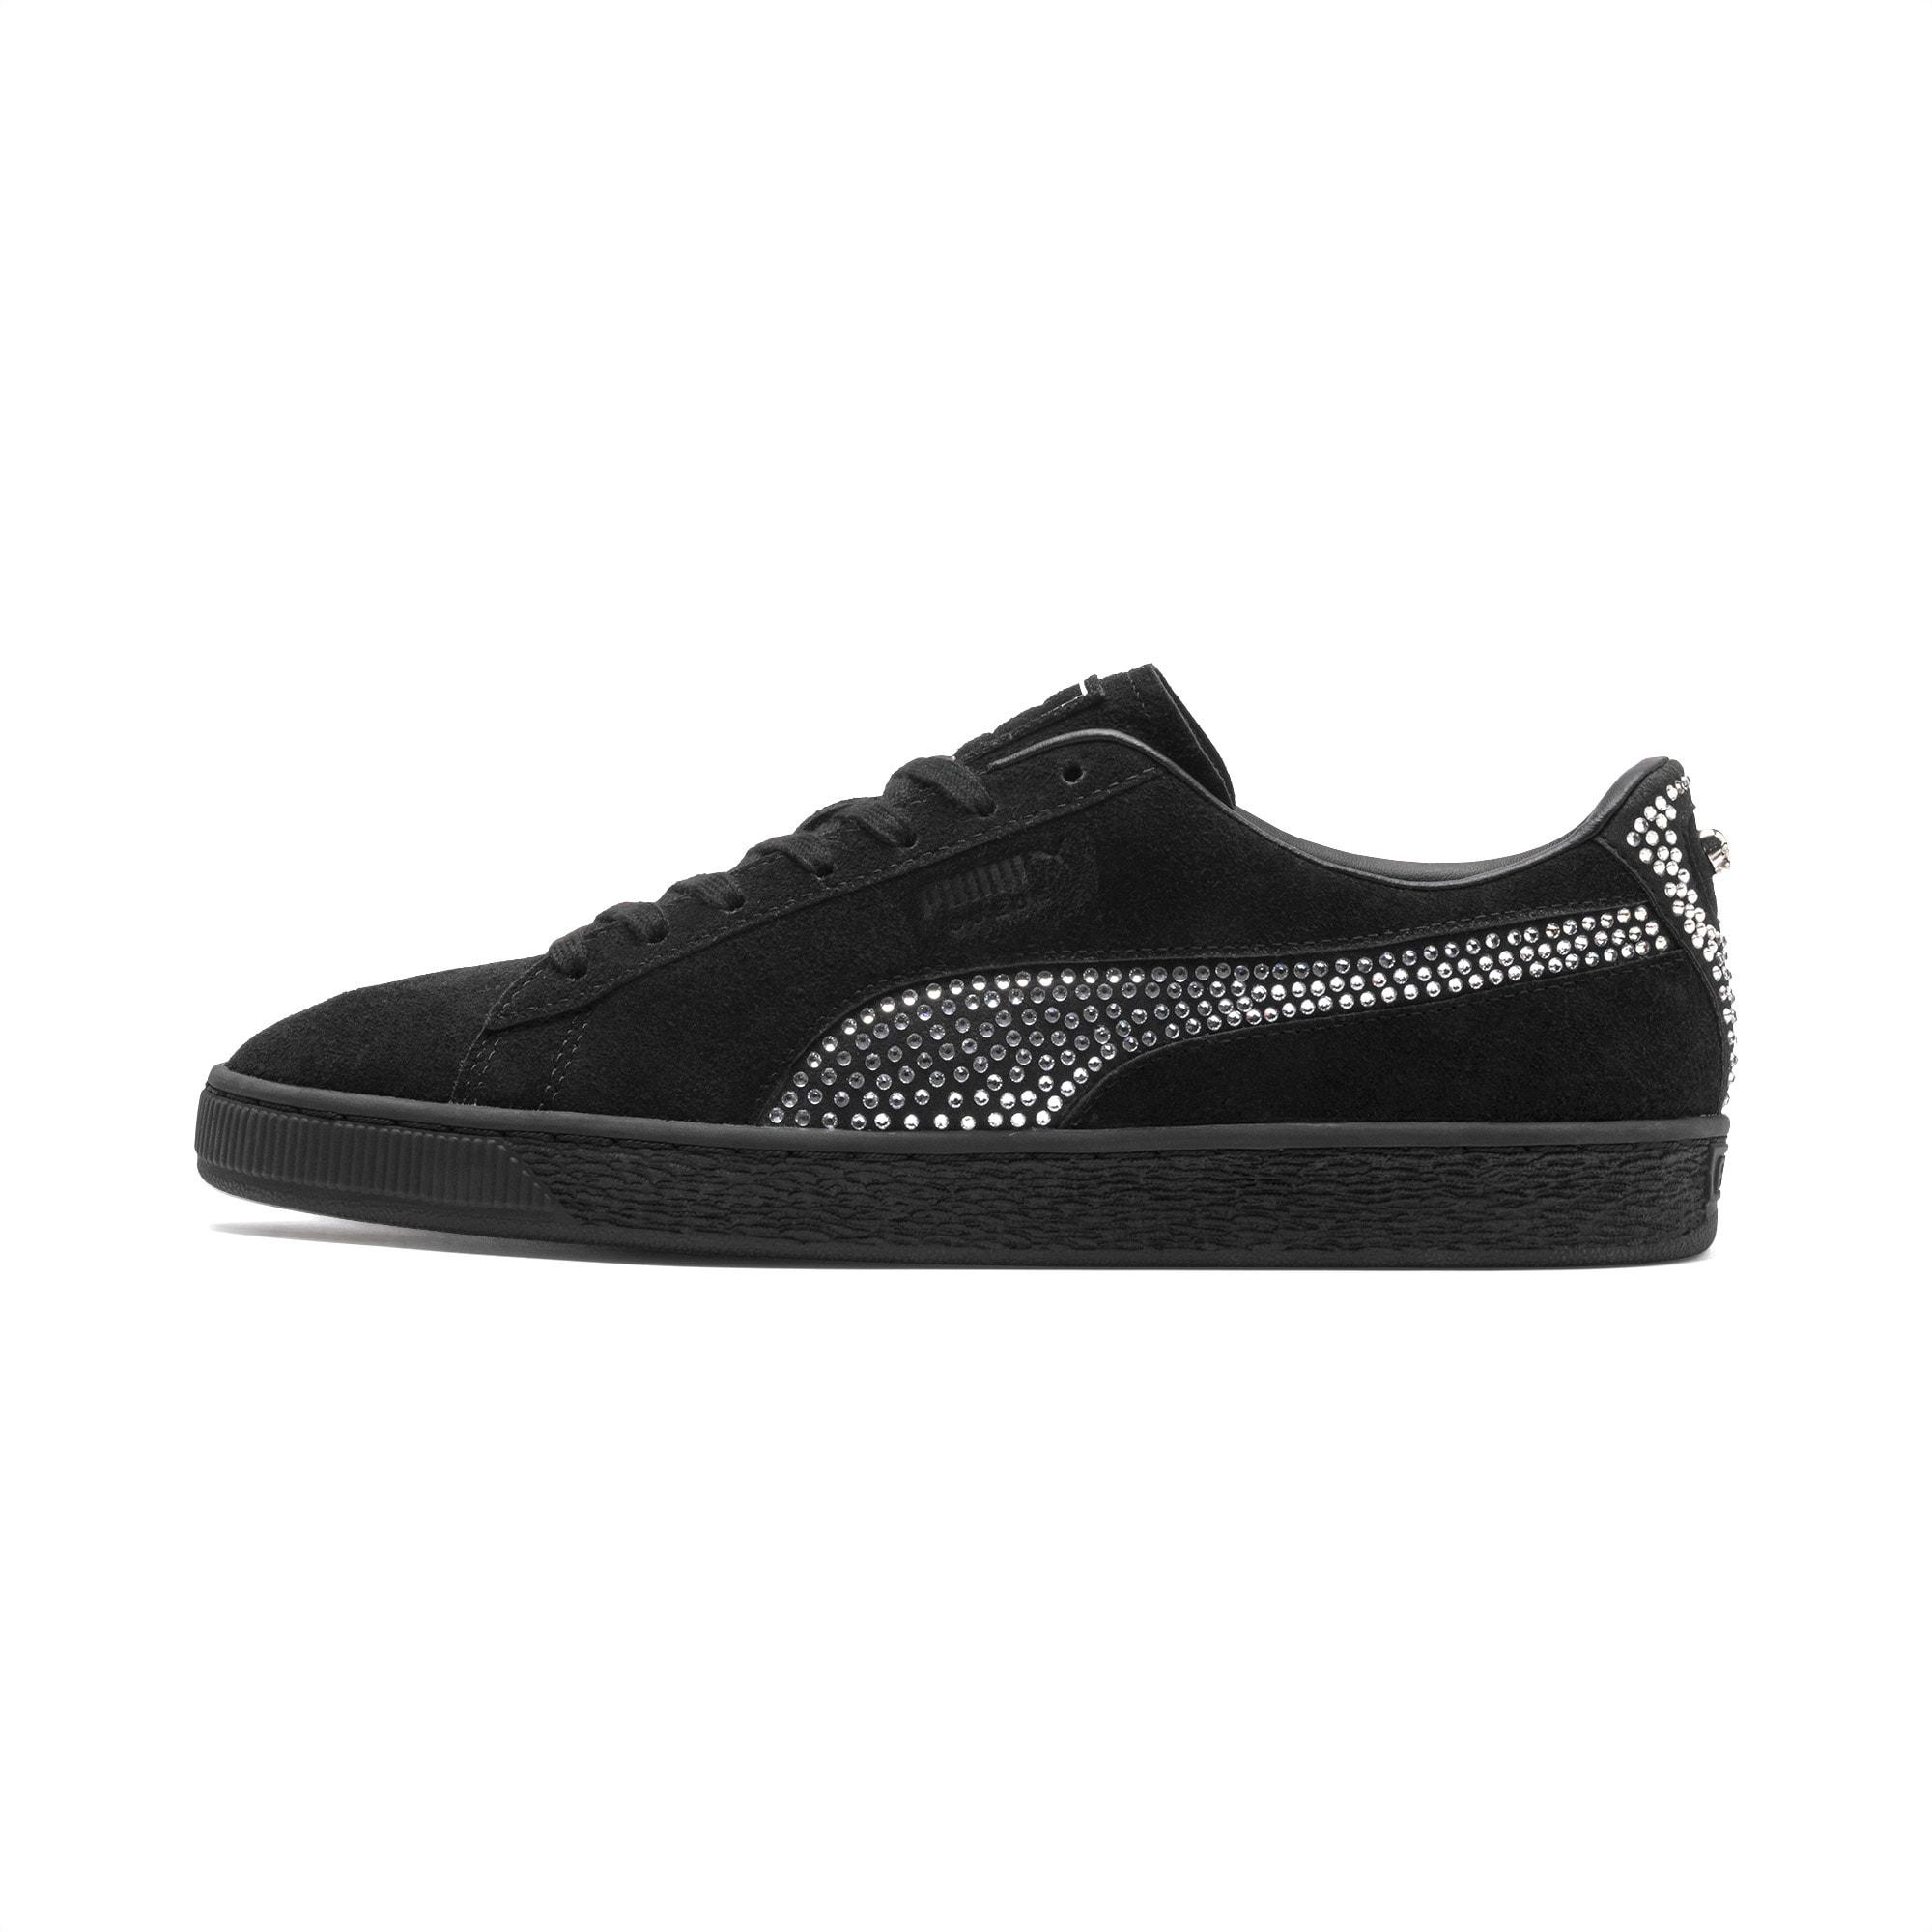 Puma x The Kooples Thunder Sneakers – ACE